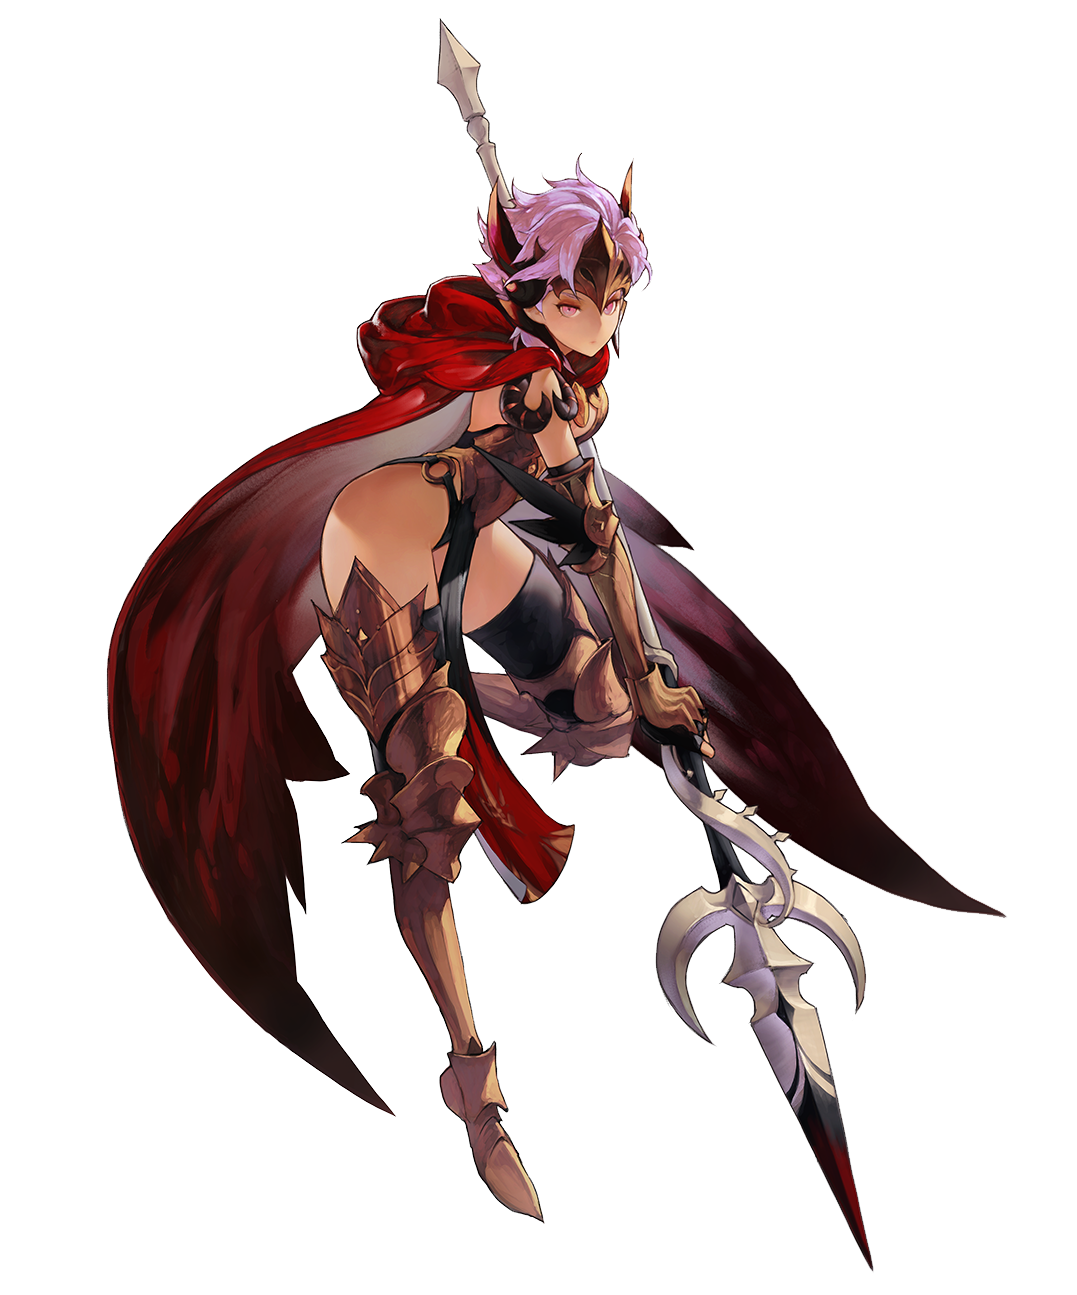 Anime Characters Knights : Seven knights art anime illustration pinterest